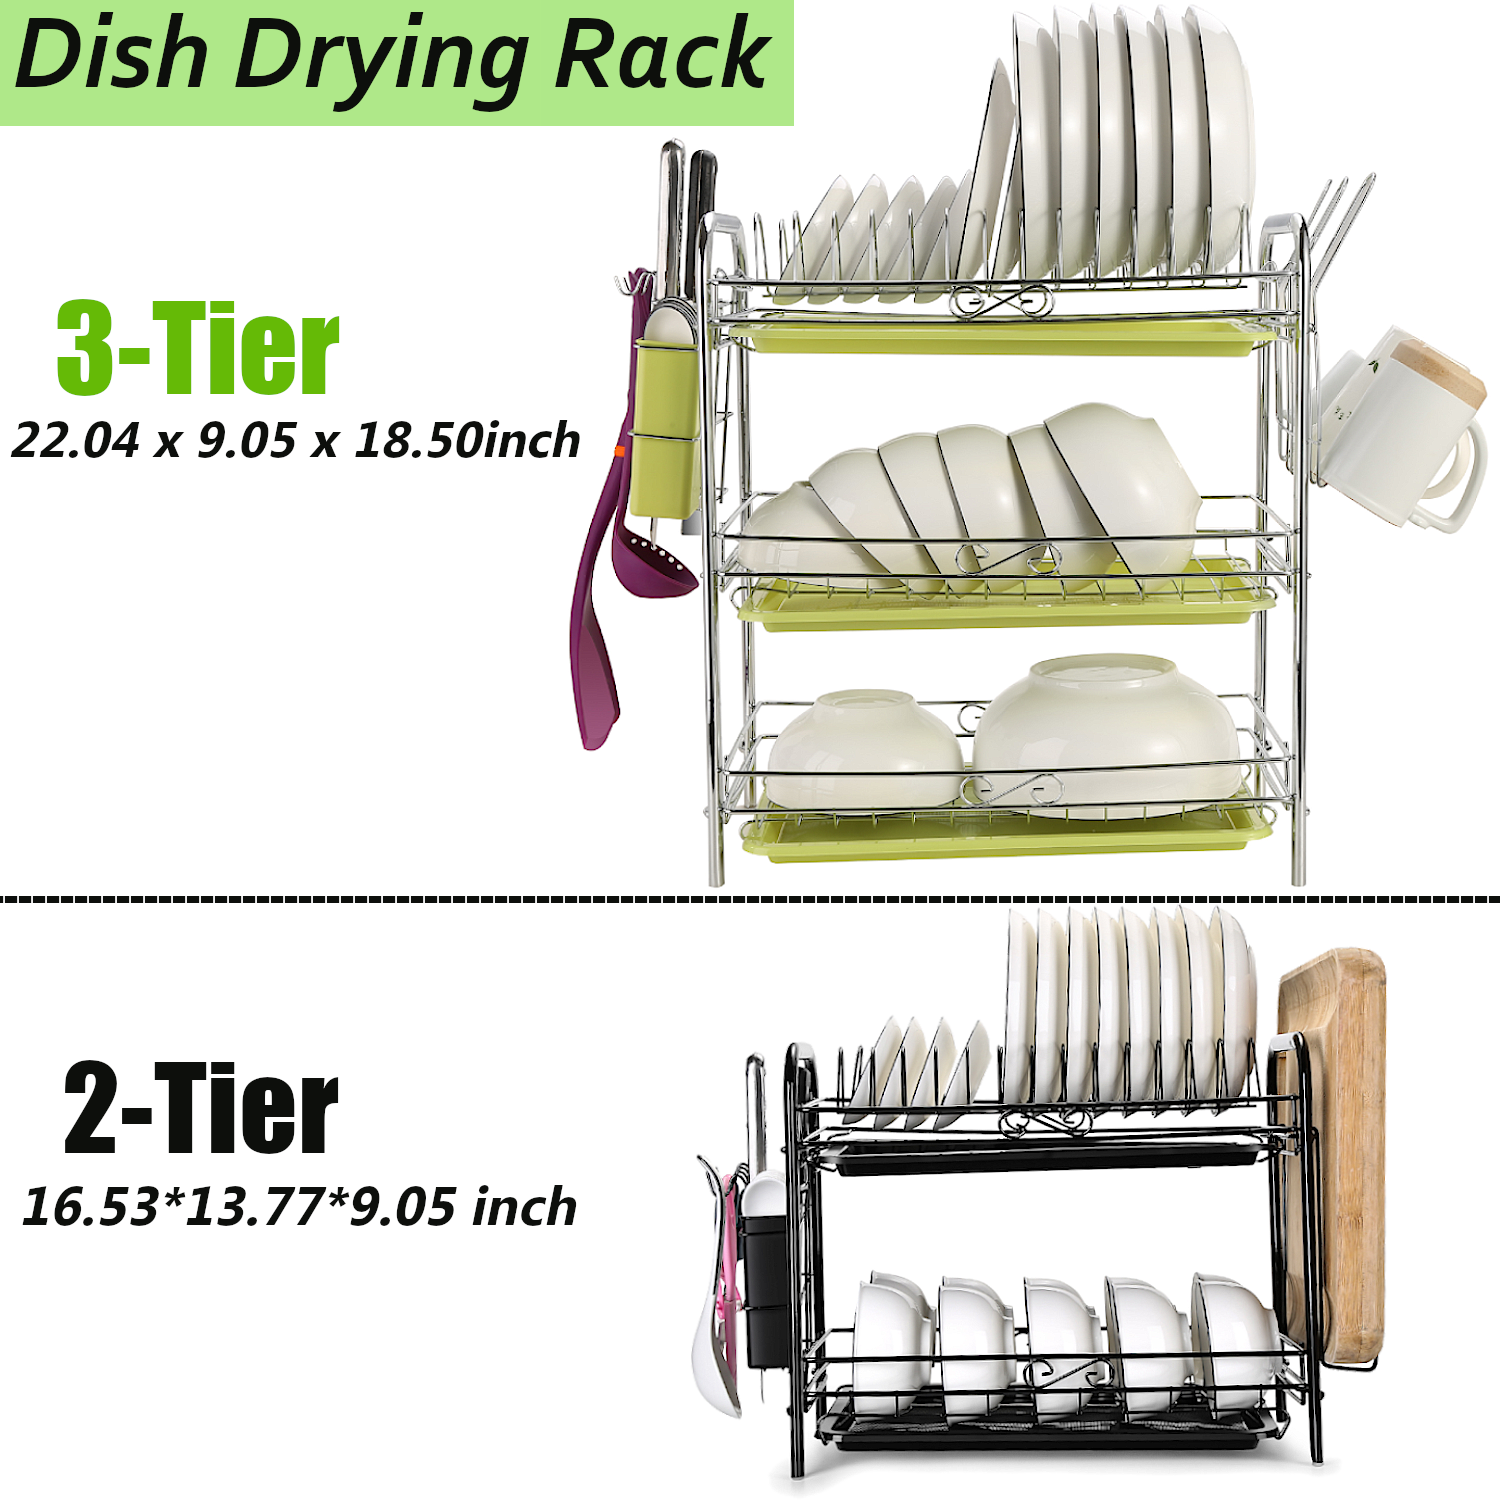 2 3 Tier Dish Plate Cup Drying Rack Organizer Drainer Storage Holder For Kitchen Ebay